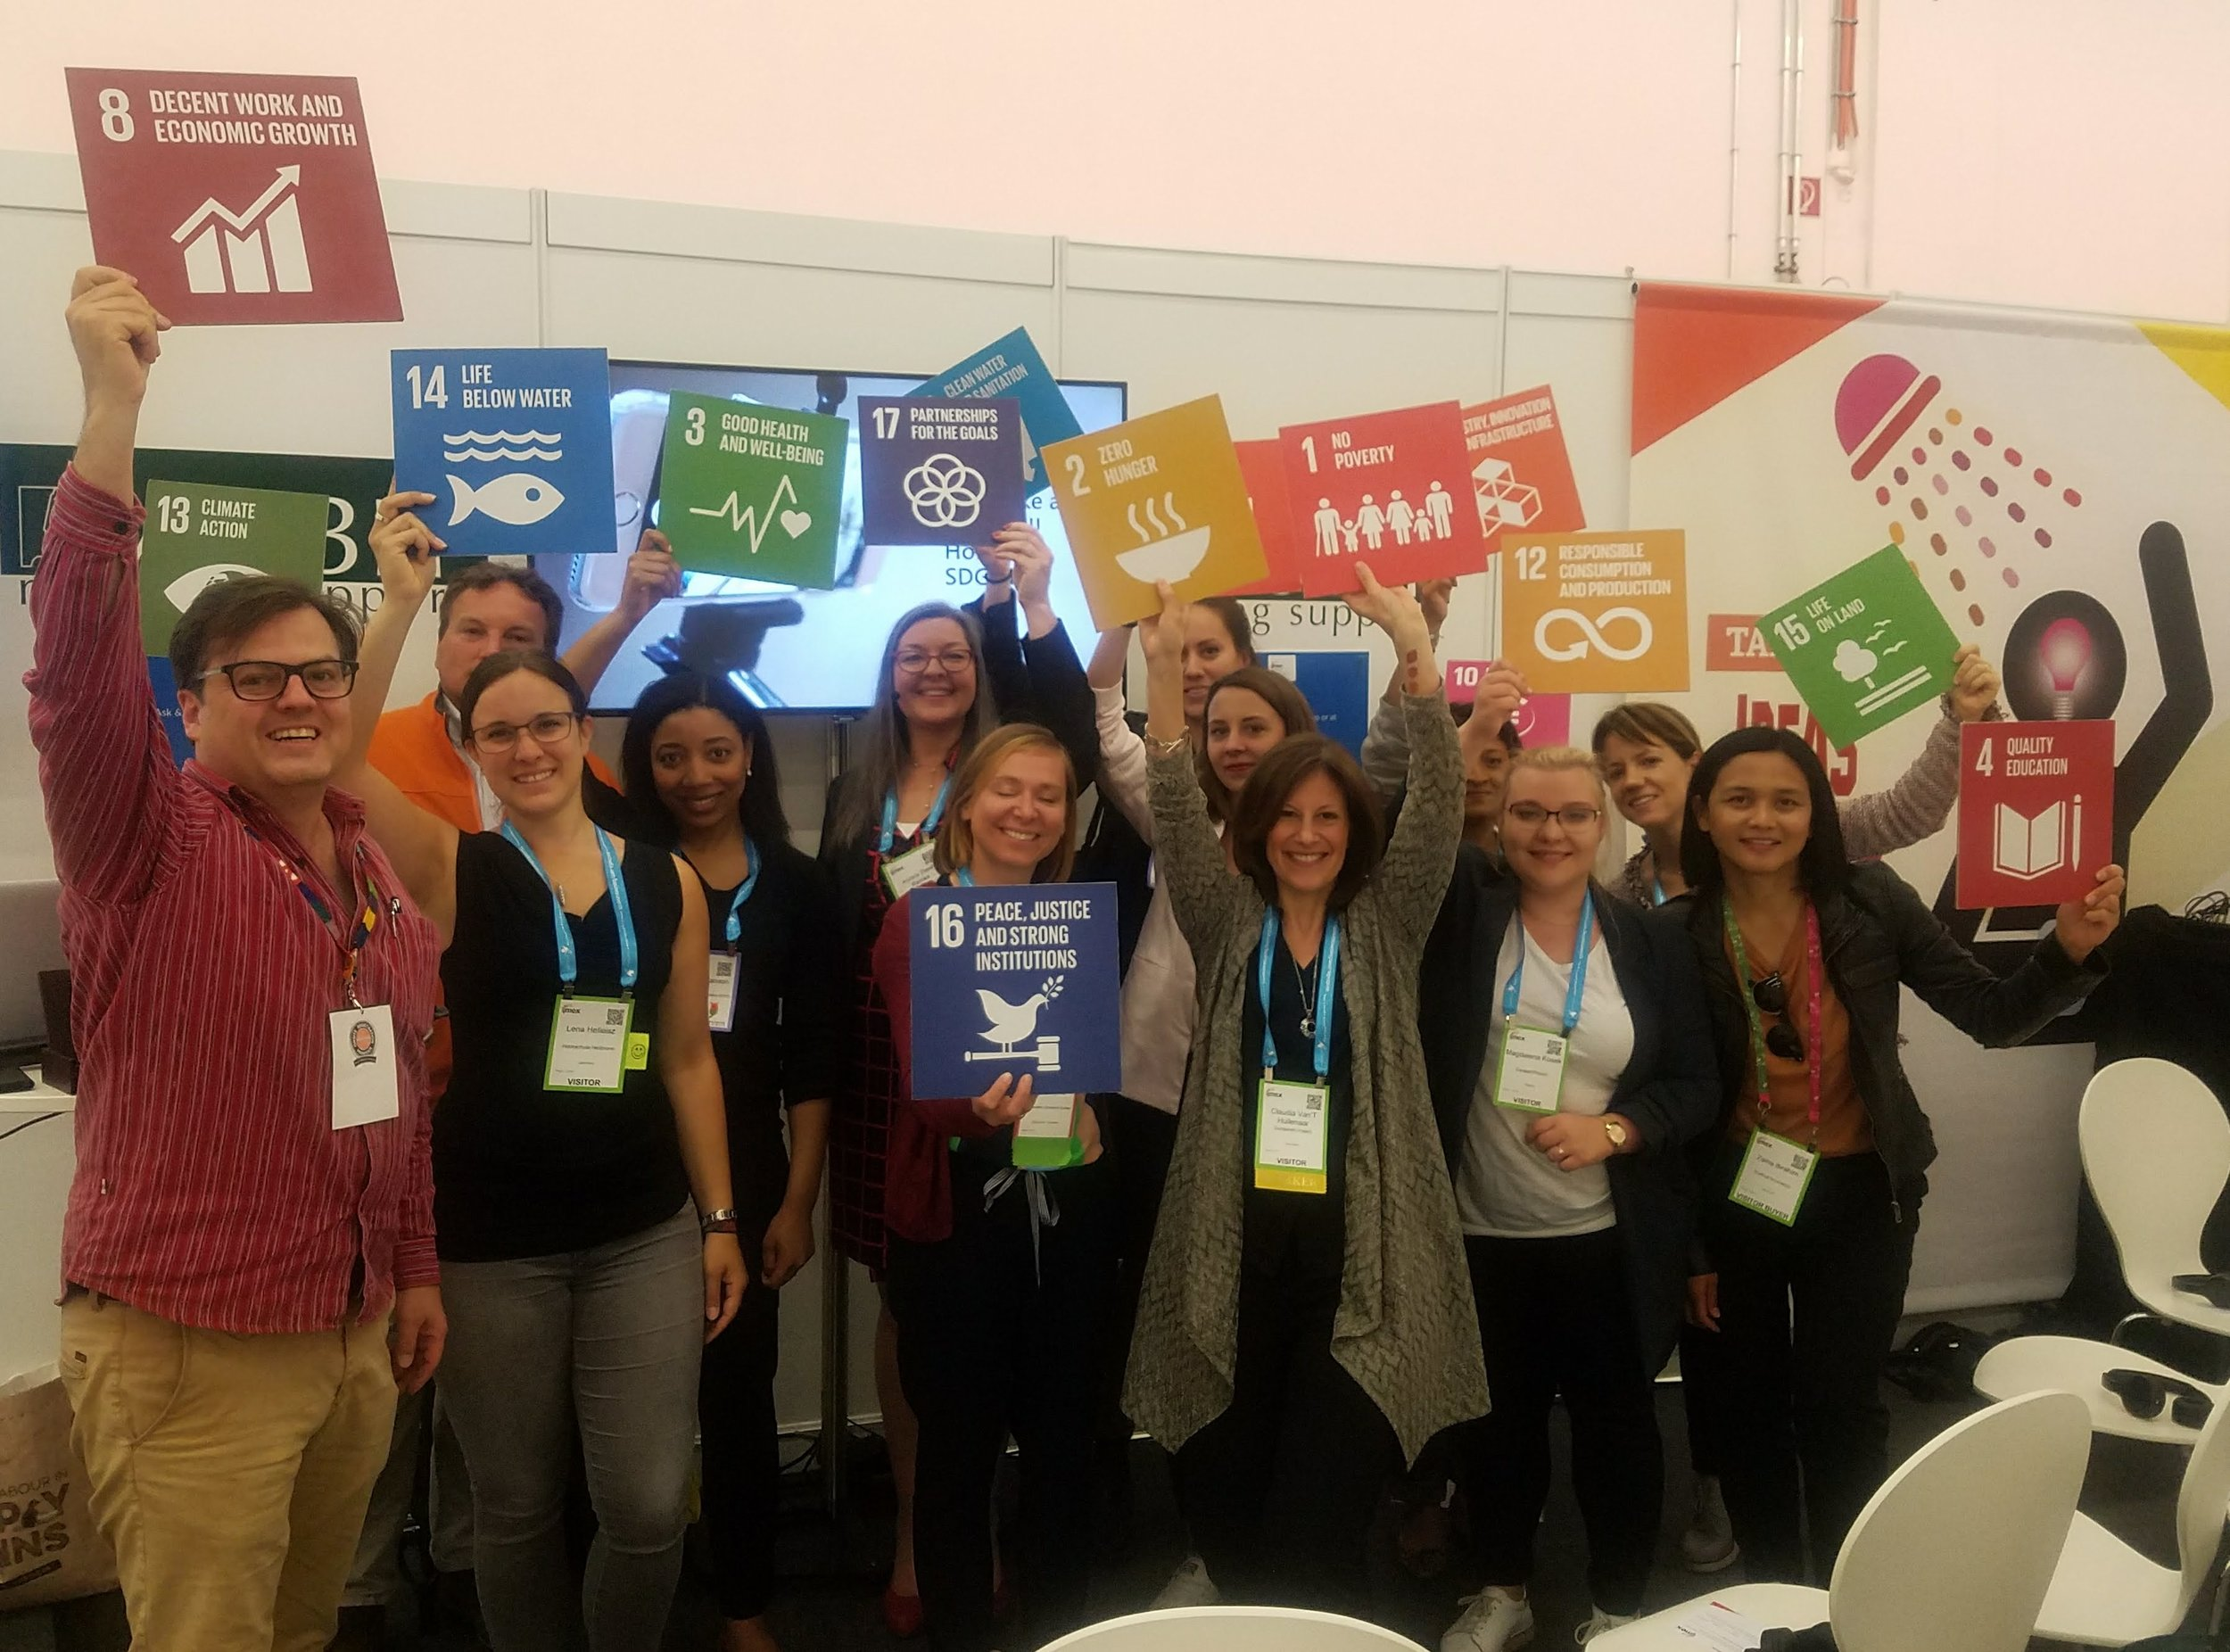 A design oriented workshop to integrate SDGs into event design and supplier services